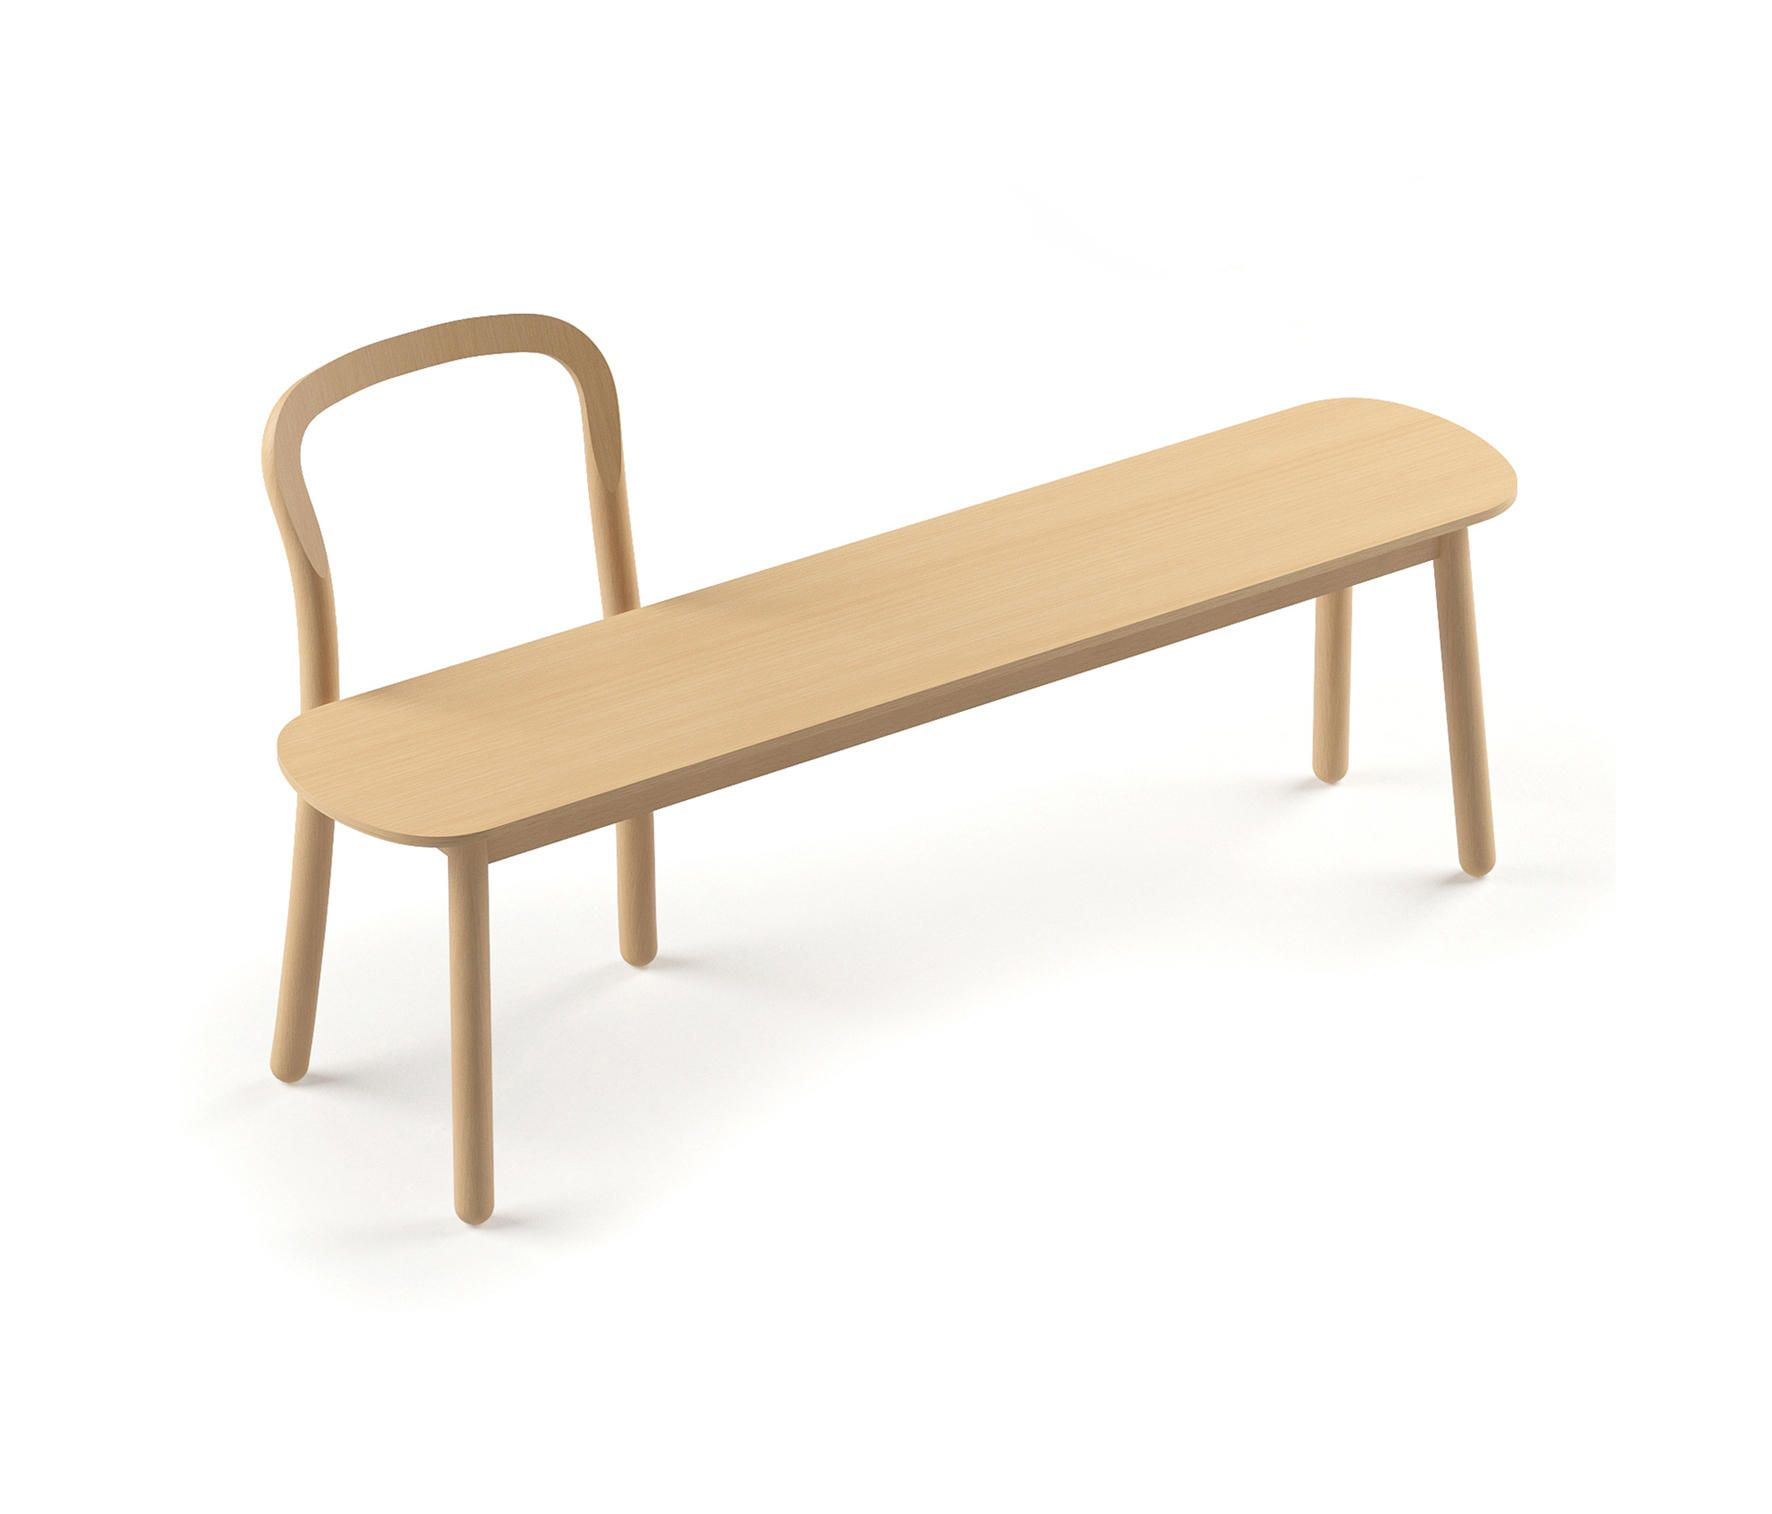 Beech Bench Designer Benches From Dum All Information High Resolution Images Cads Catalogues Contact Informatio Bench Modern Office Chair Furniture